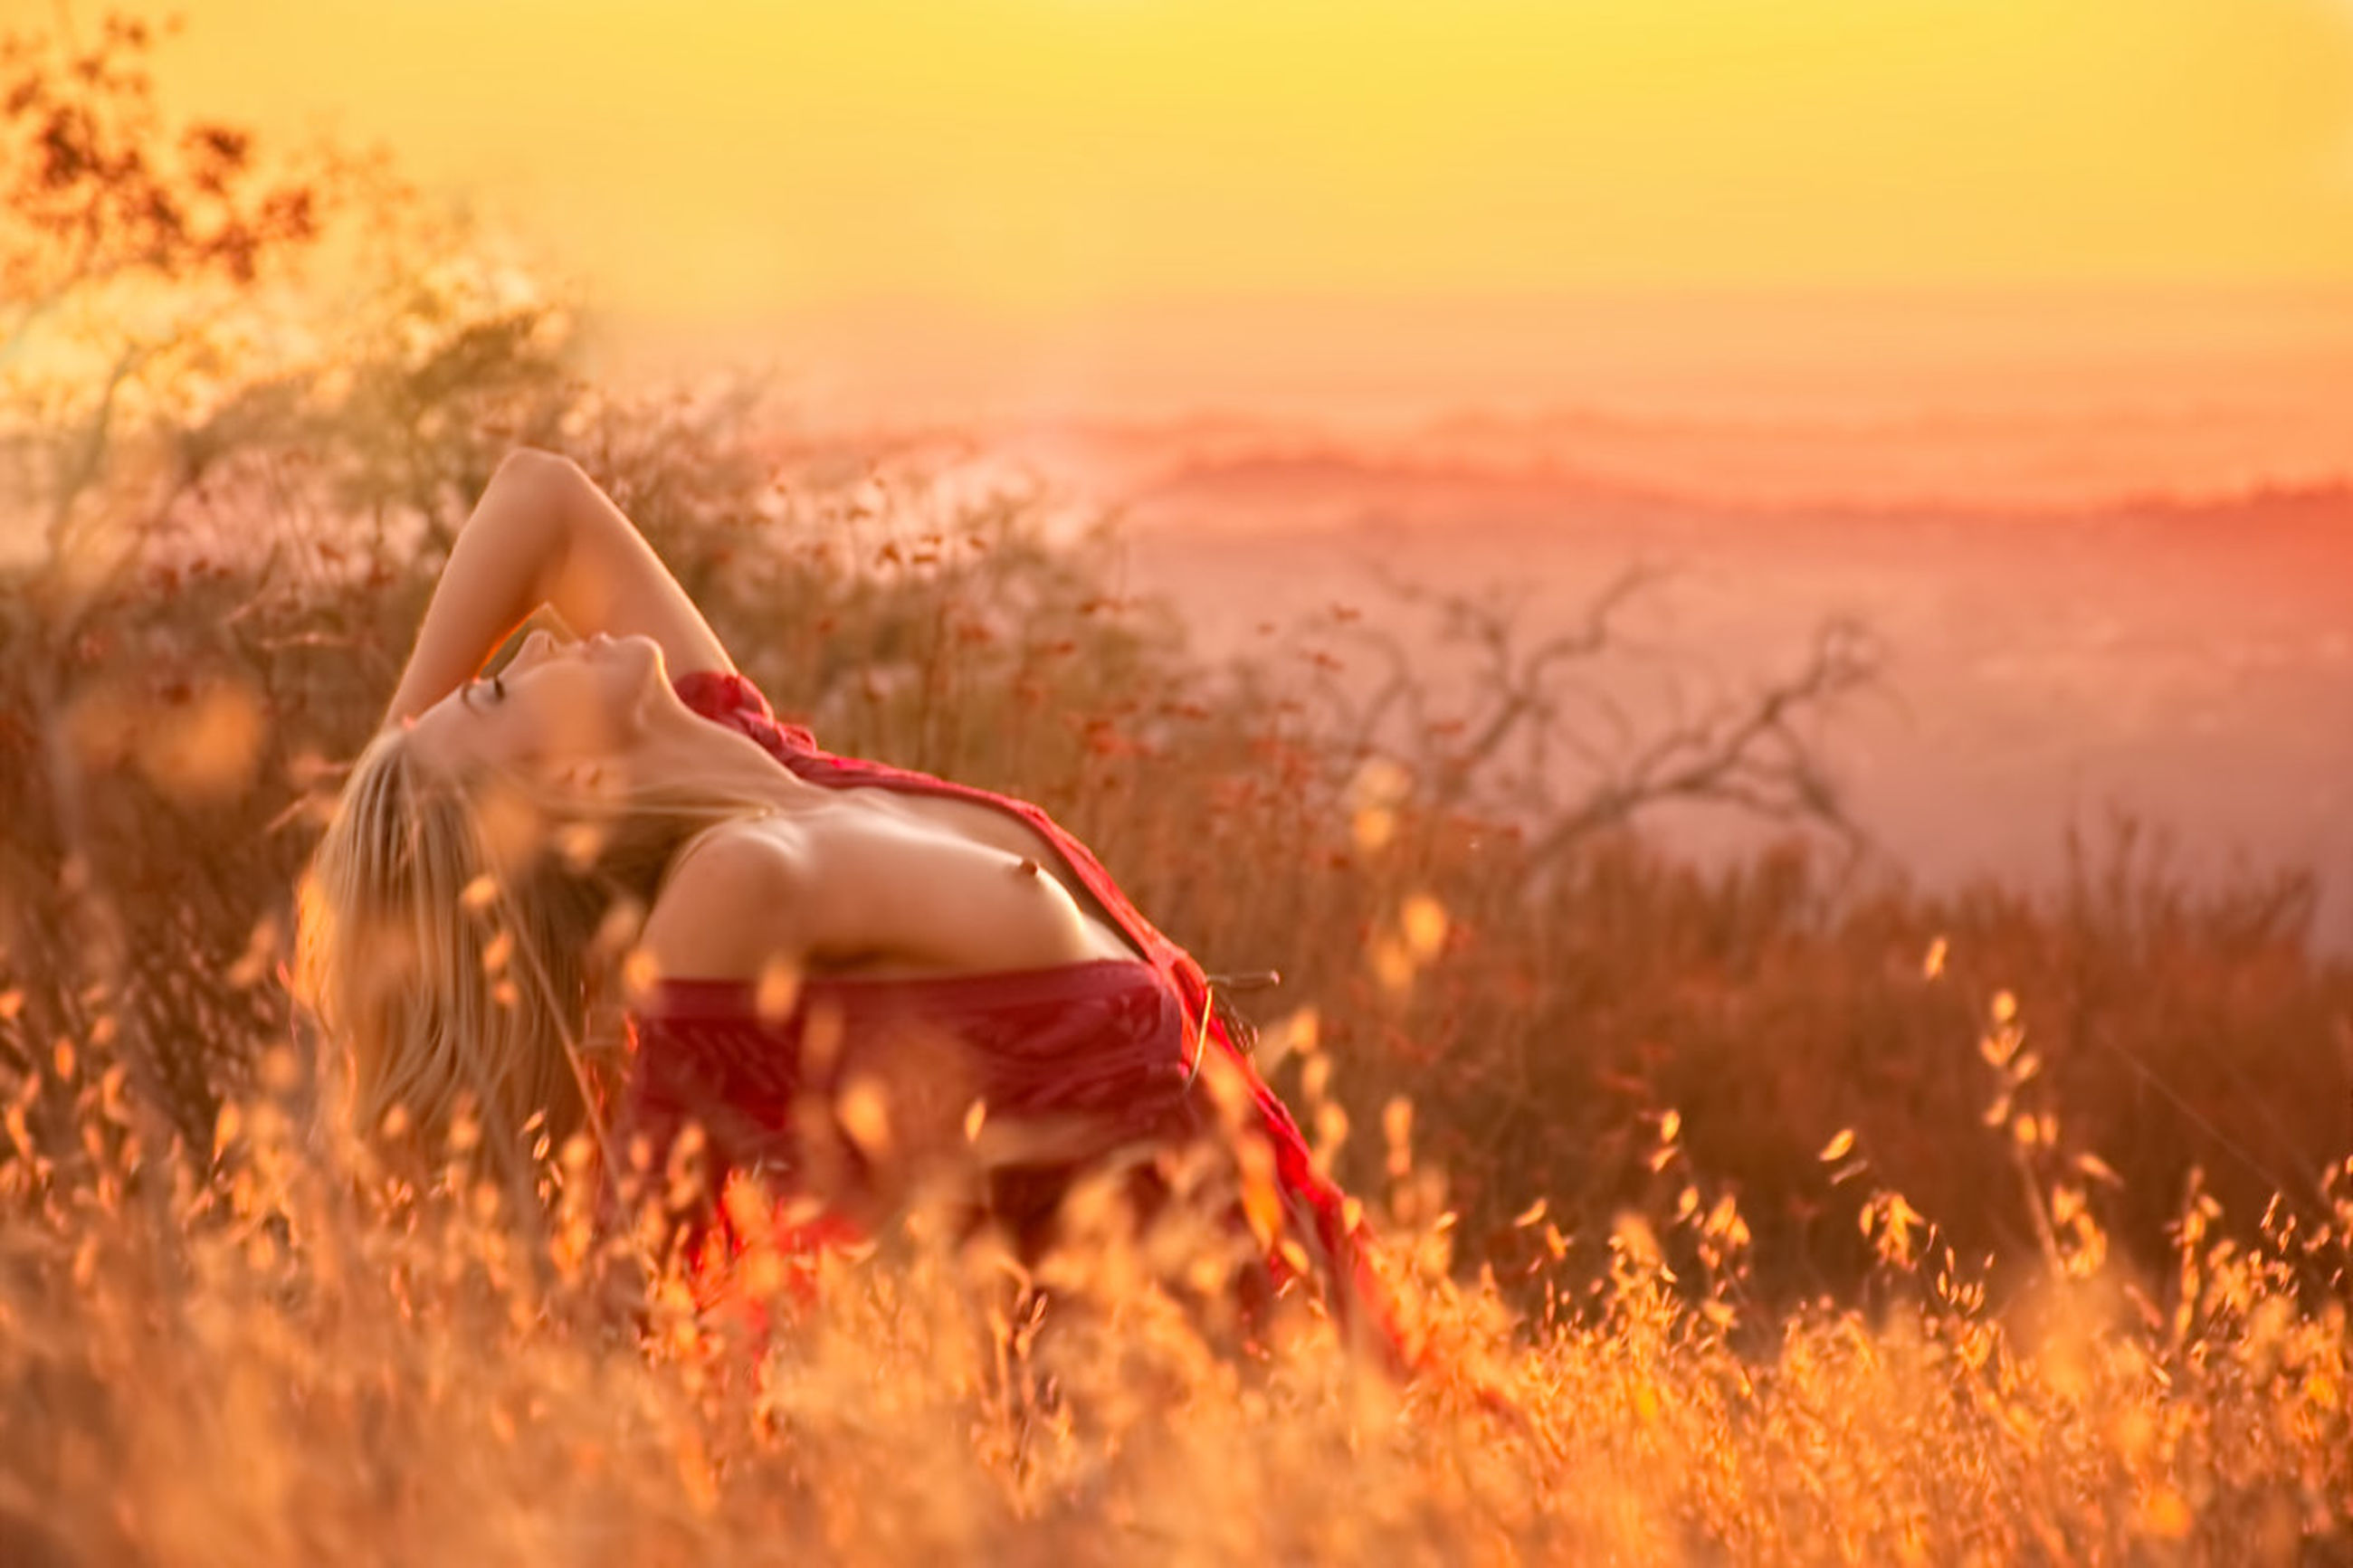 sunset, one person, land, nature, field, plant, young adult, grass, beauty in nature, sky, women, leisure activity, adult, selective focus, sunlight, relaxation, real people, lifestyles, long hair, hairstyle, outdoors, beautiful woman